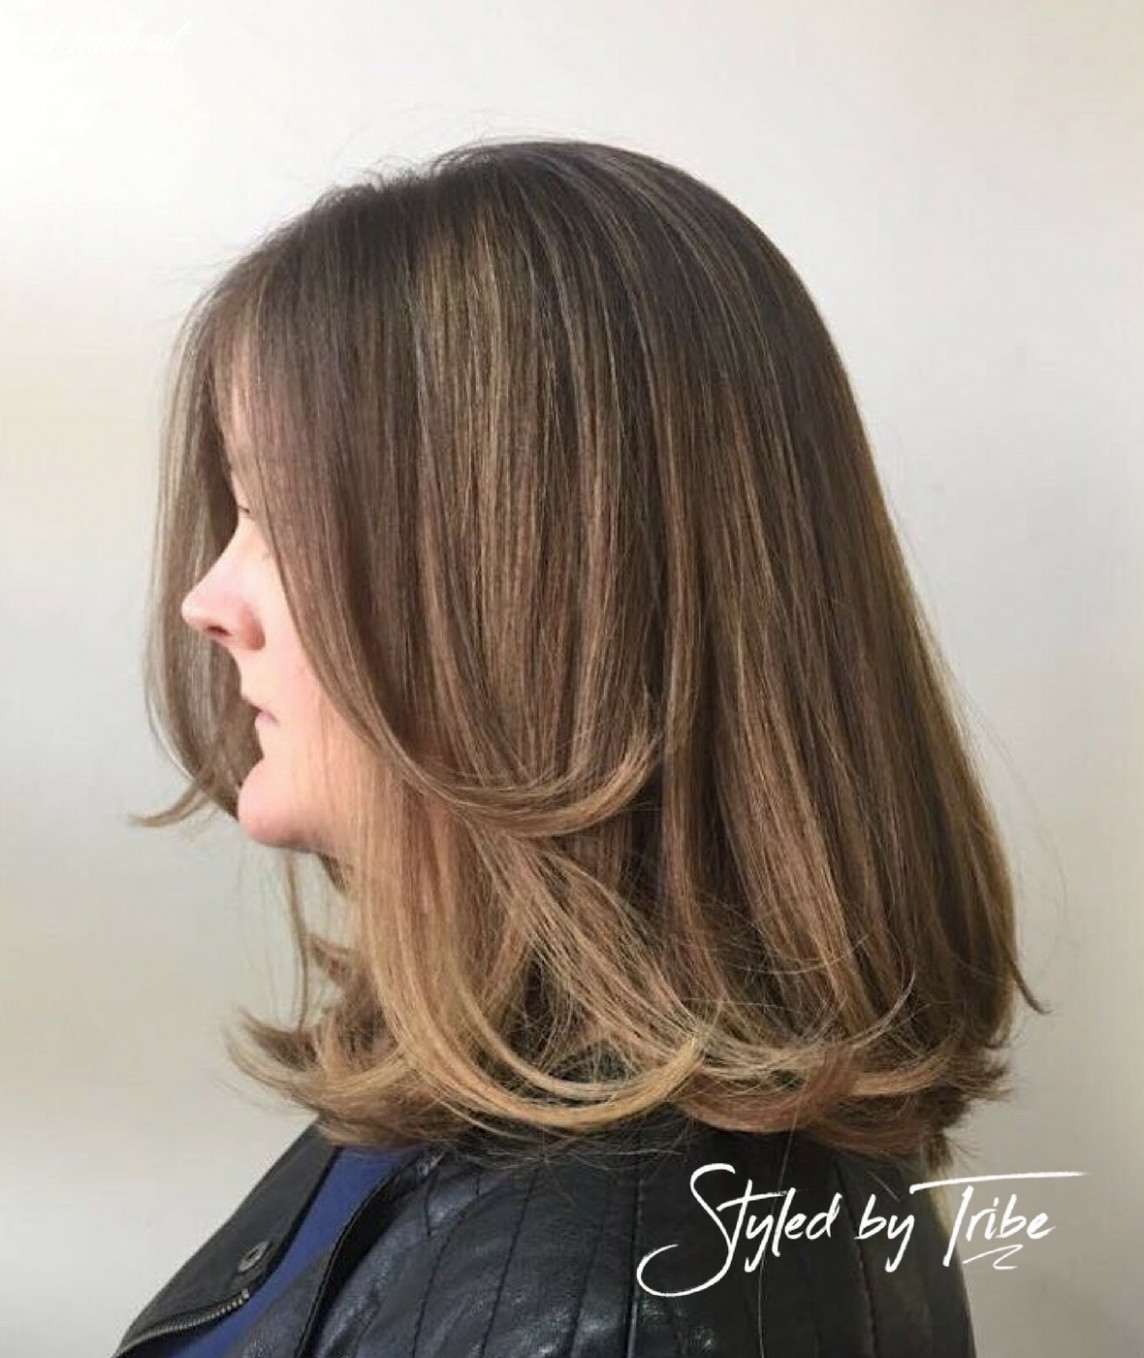 Balayage & Mid Length Cut | Styled By Danielle - Tribe Hair Salon